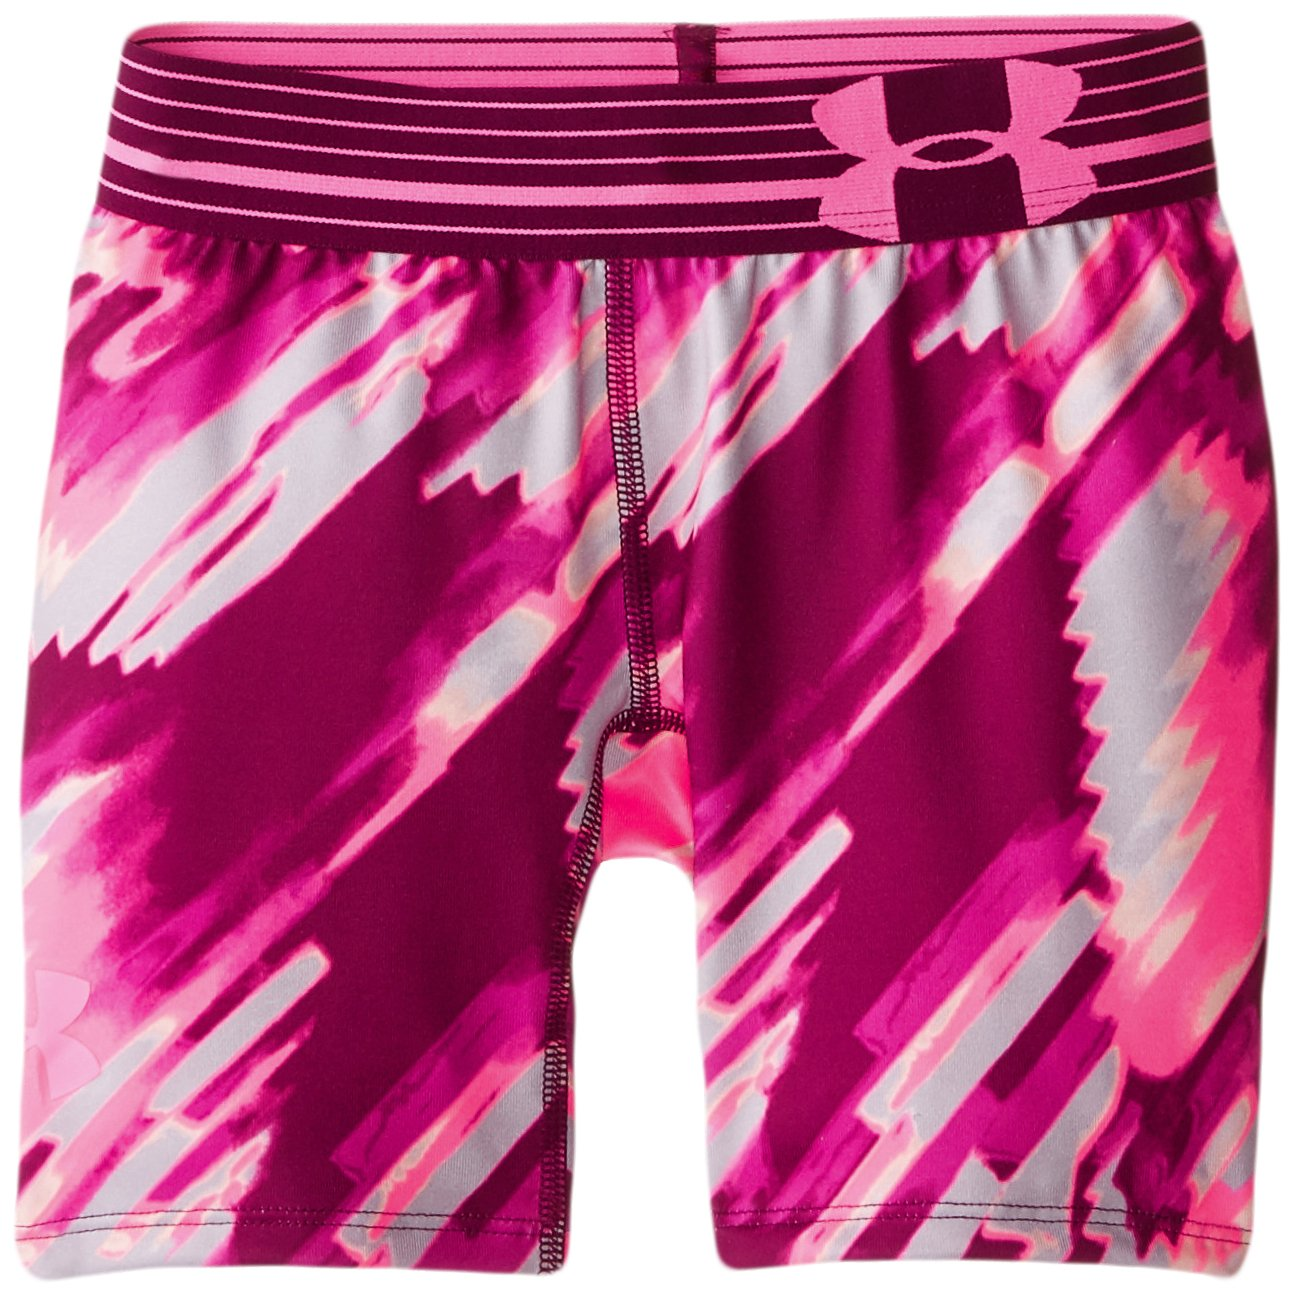 Under Armour Girls' HeatGear Armour Printed Short - 5'', Beet /Pink Punk, Youth Small by Under Armour